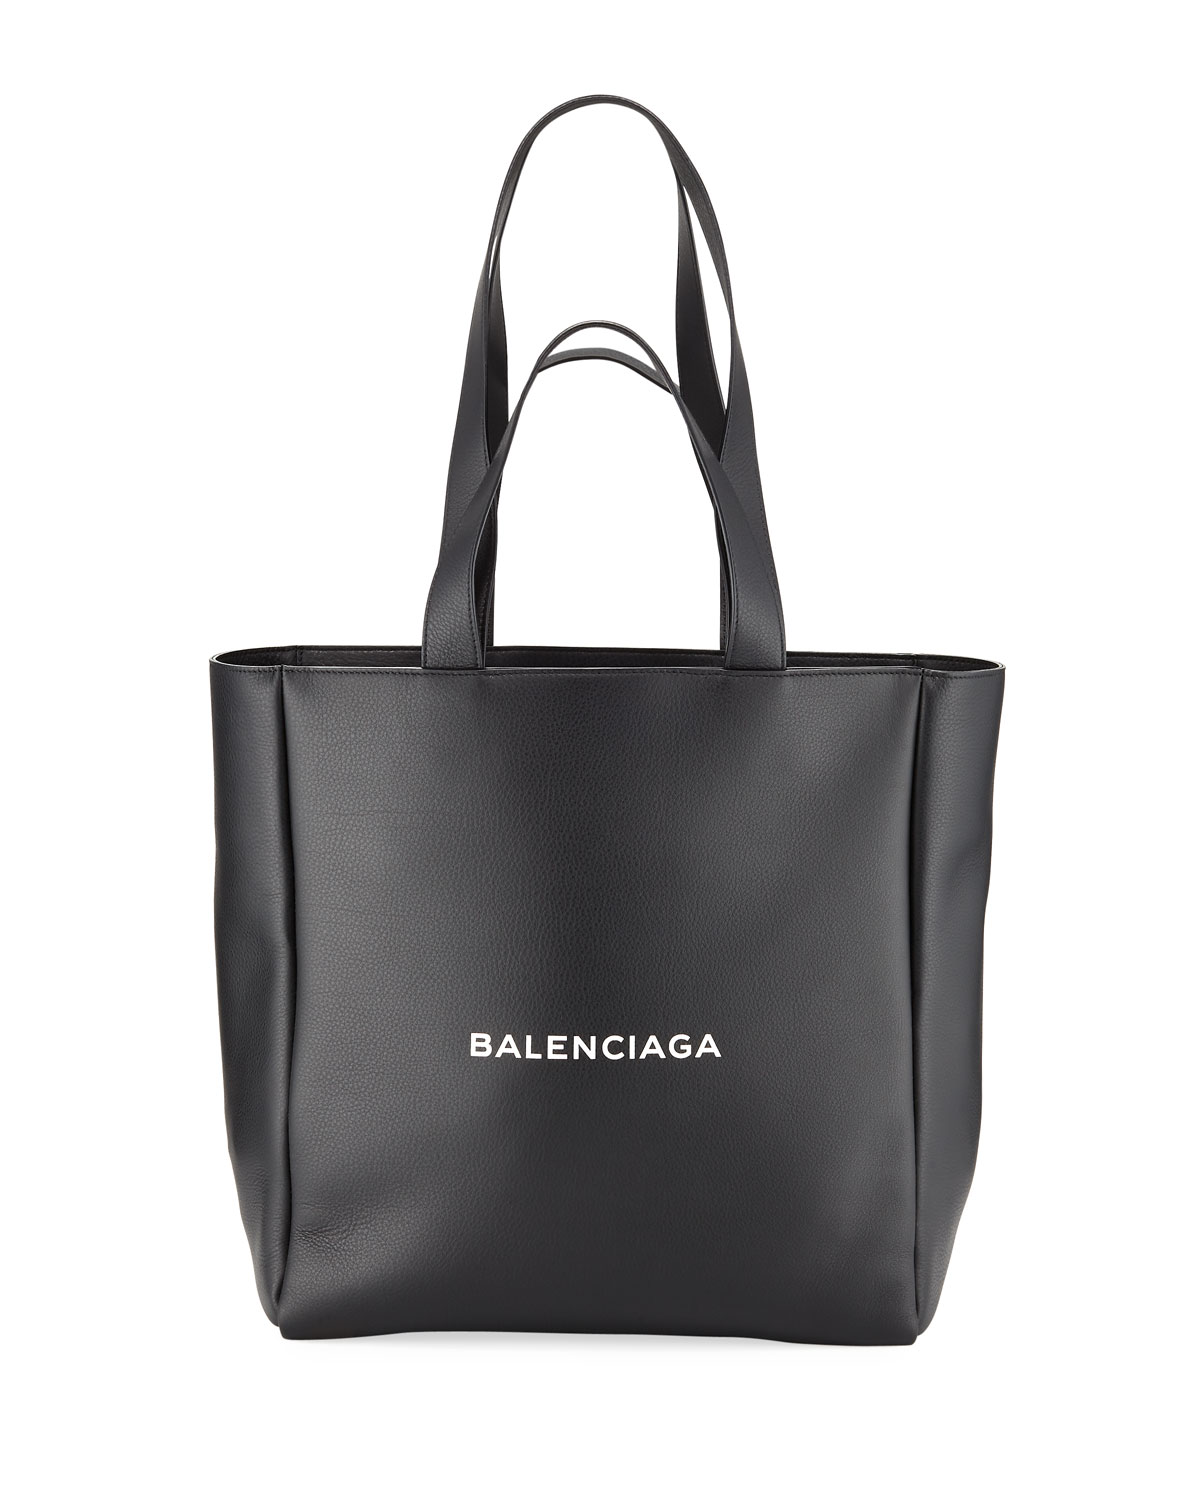 63c252a28430 Balenciaga Men s Medium East-West Leather Tote Bag